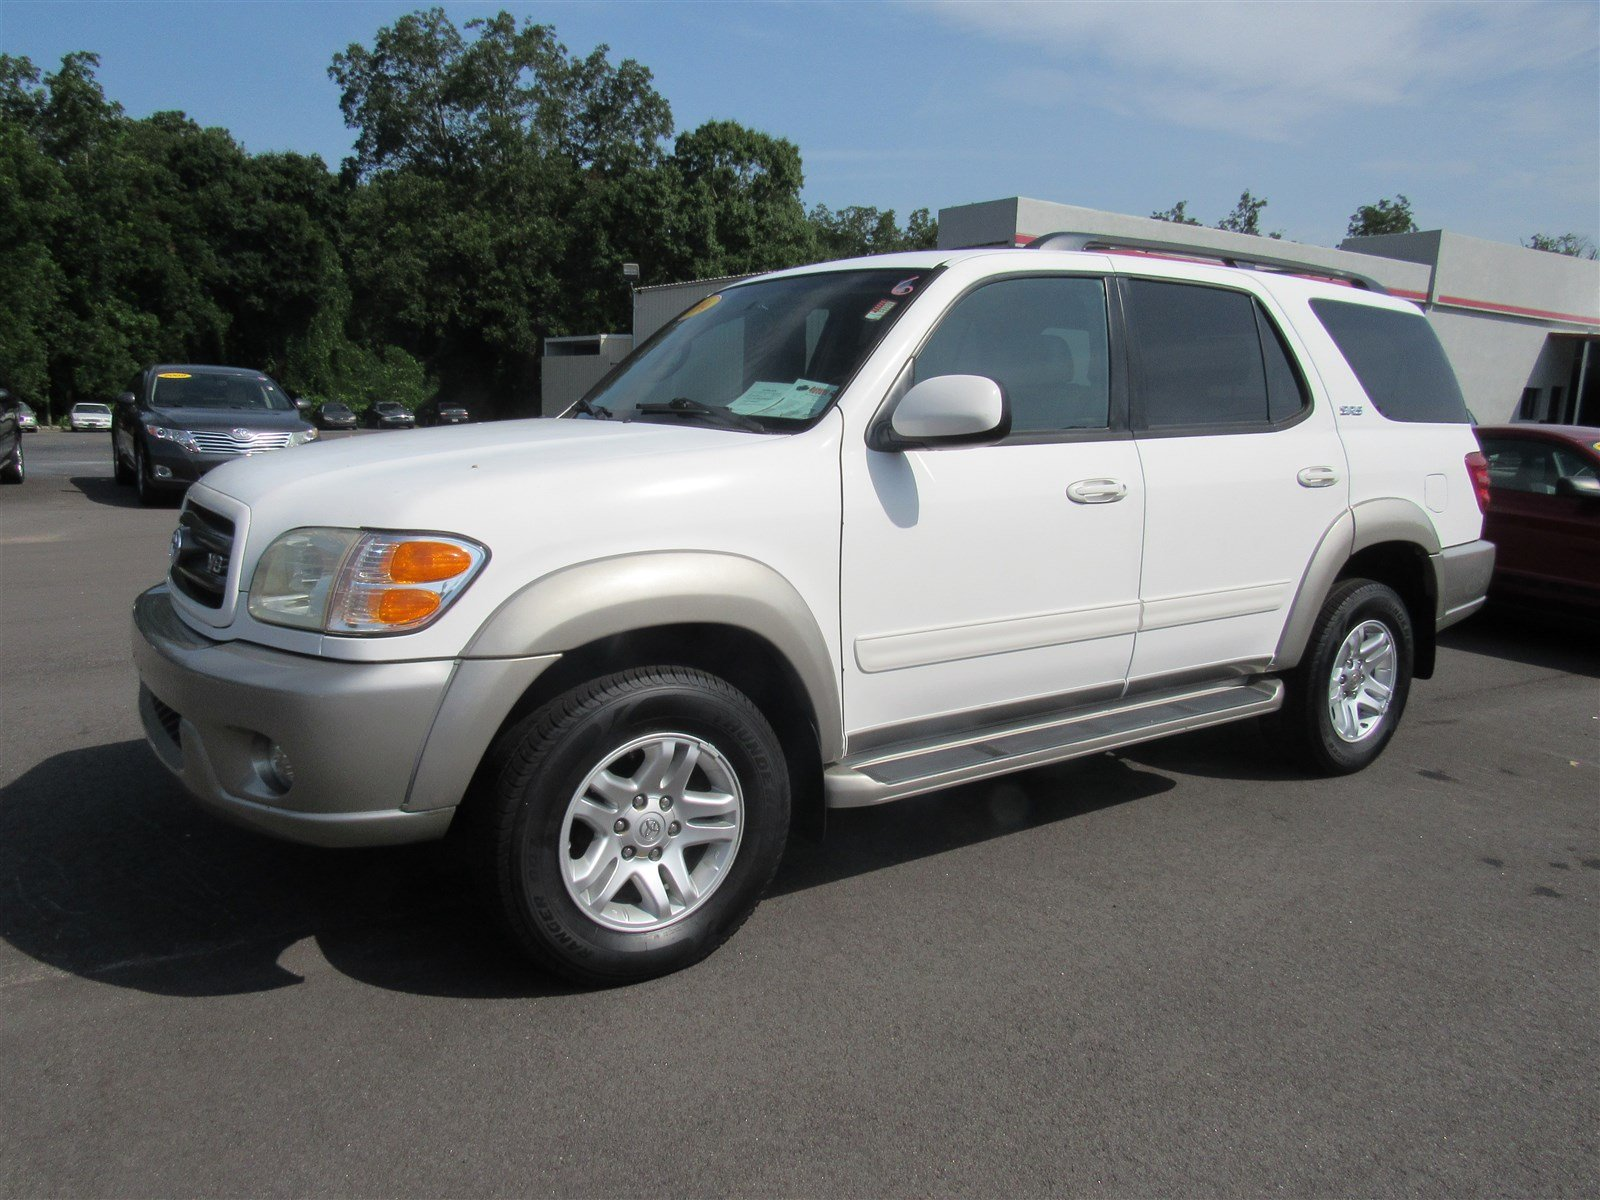 pre owned 2004 toyota sequoia 4dr sr5 4wd suv in lagrange m9553b Custom Toyota Sequoia Platinum 2017 pre owned 2004 toyota sequoia 4dr sr5 4wd